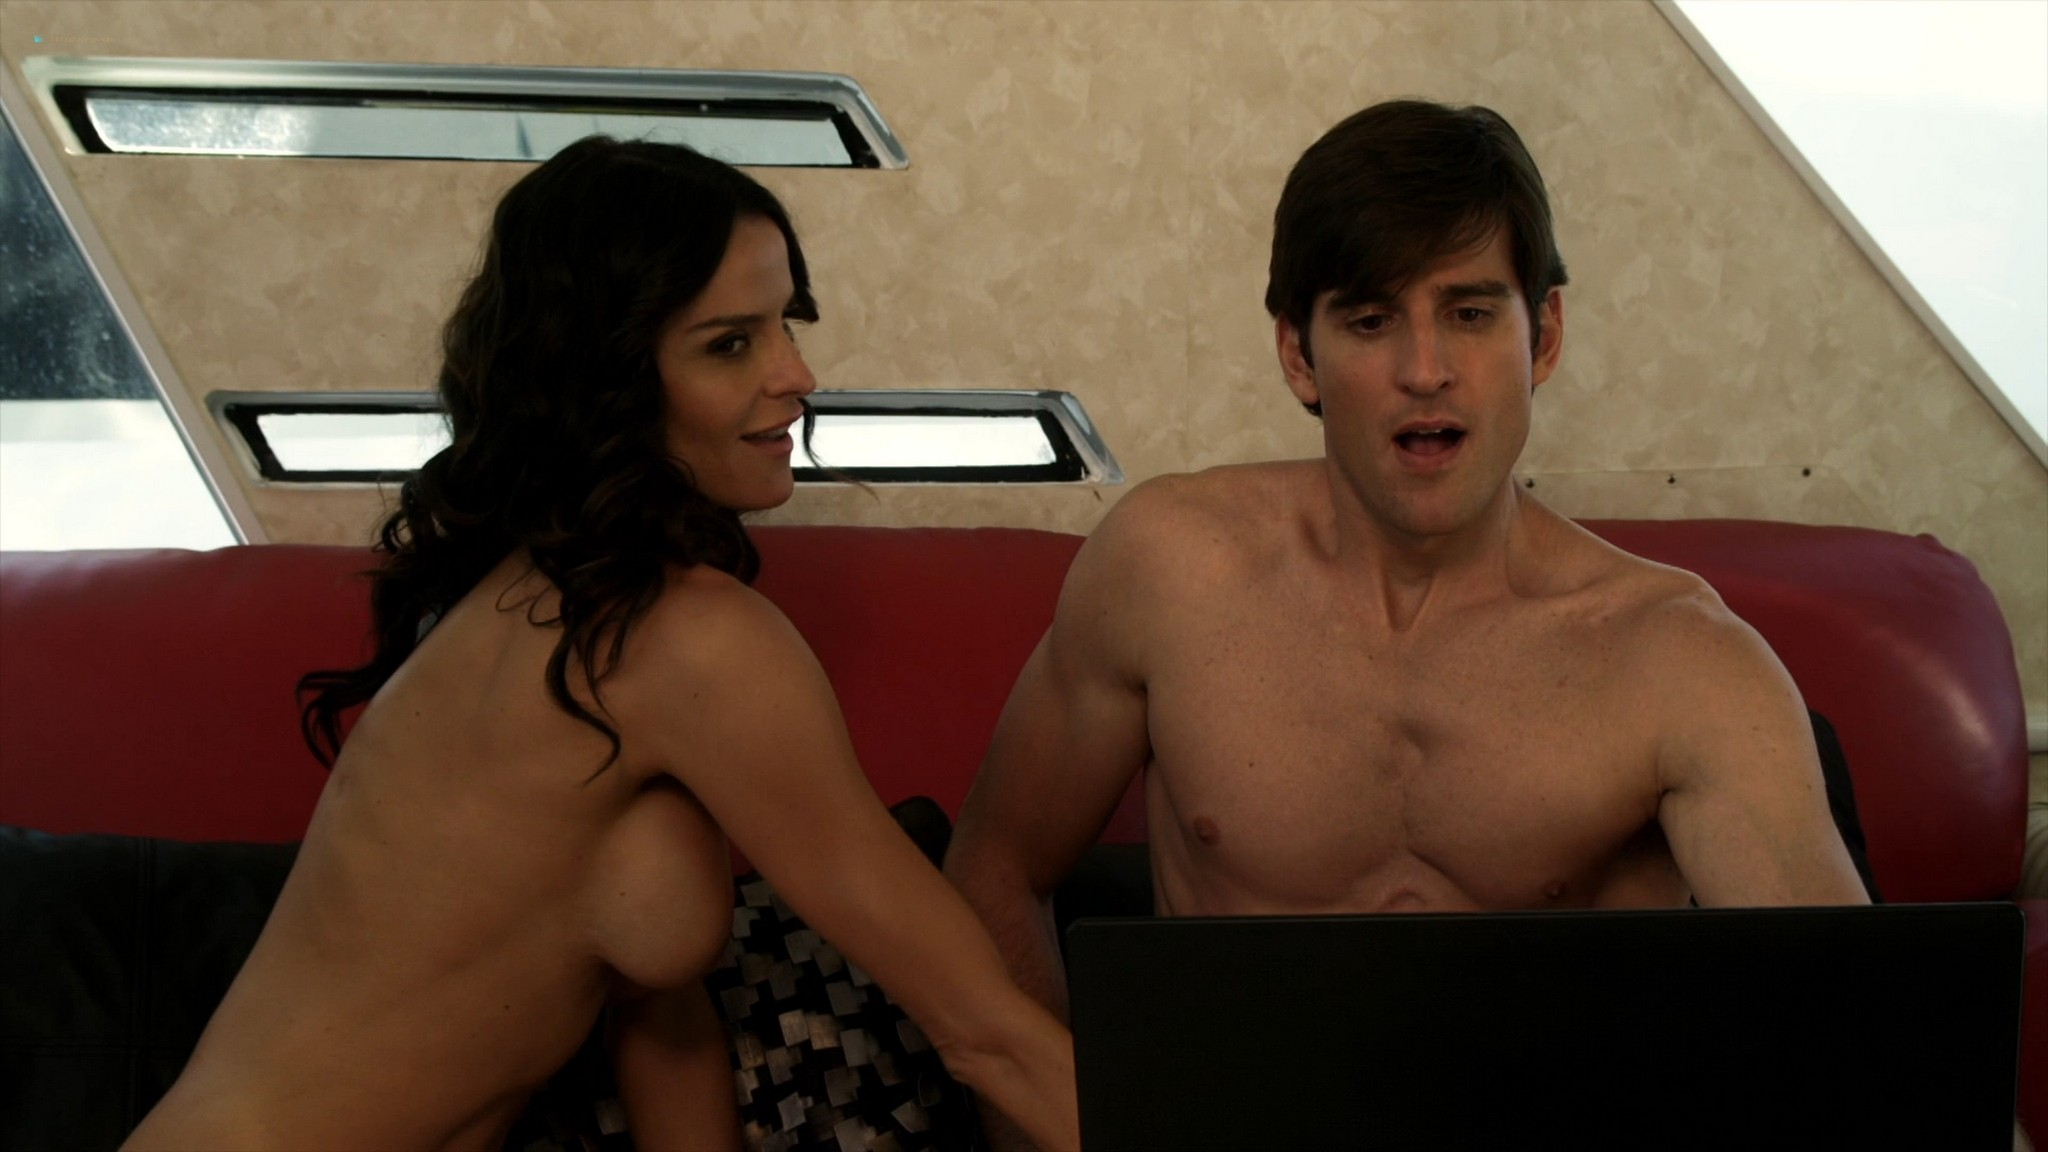 Ana Alexander nude sex Ragan Brooks naked in the shower - Chemistry (2011) s1e5 HD 1080p (5)